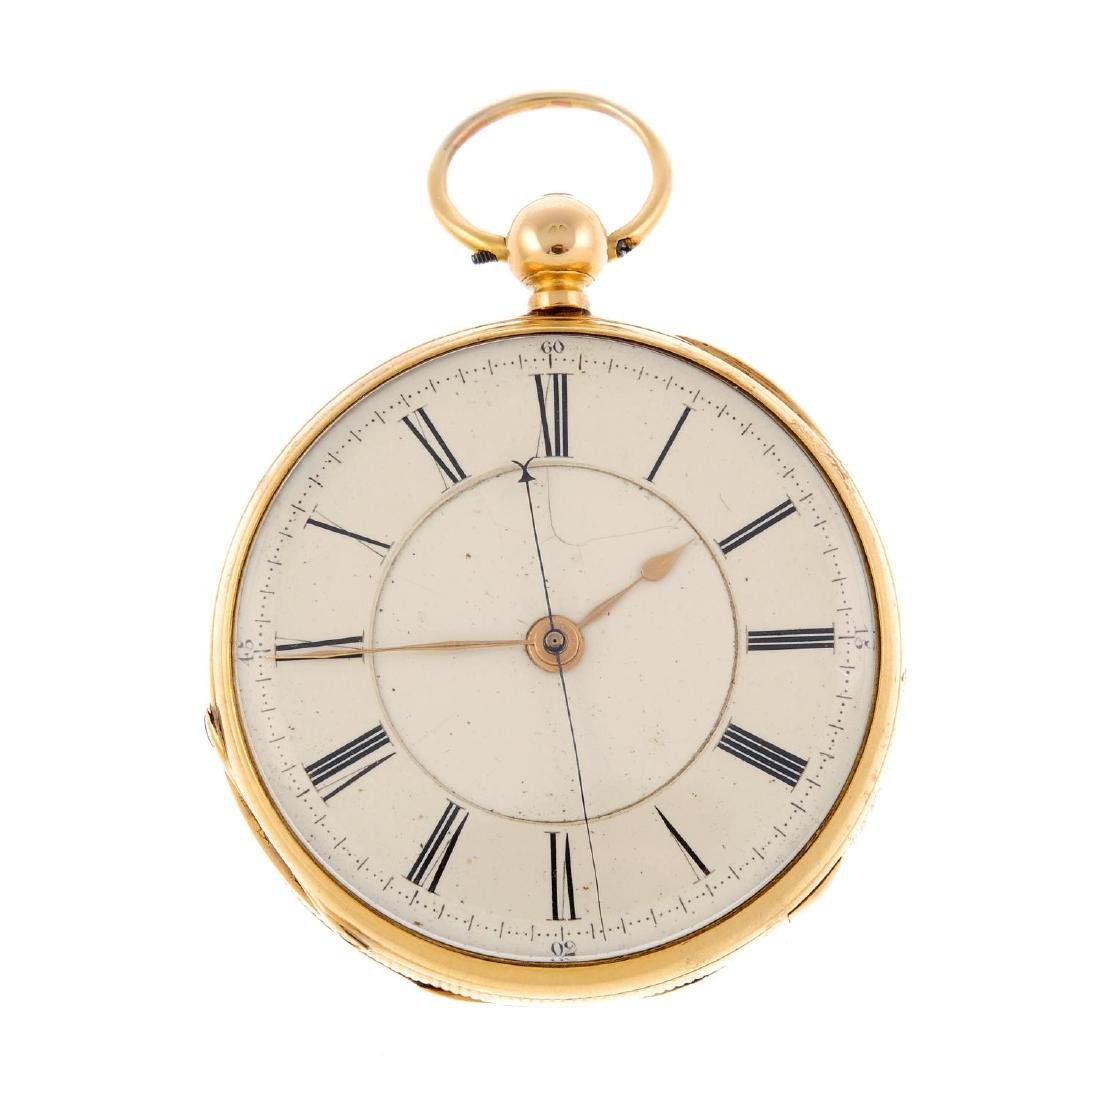 An open face centre seconds pocket watch by J. Haynes.